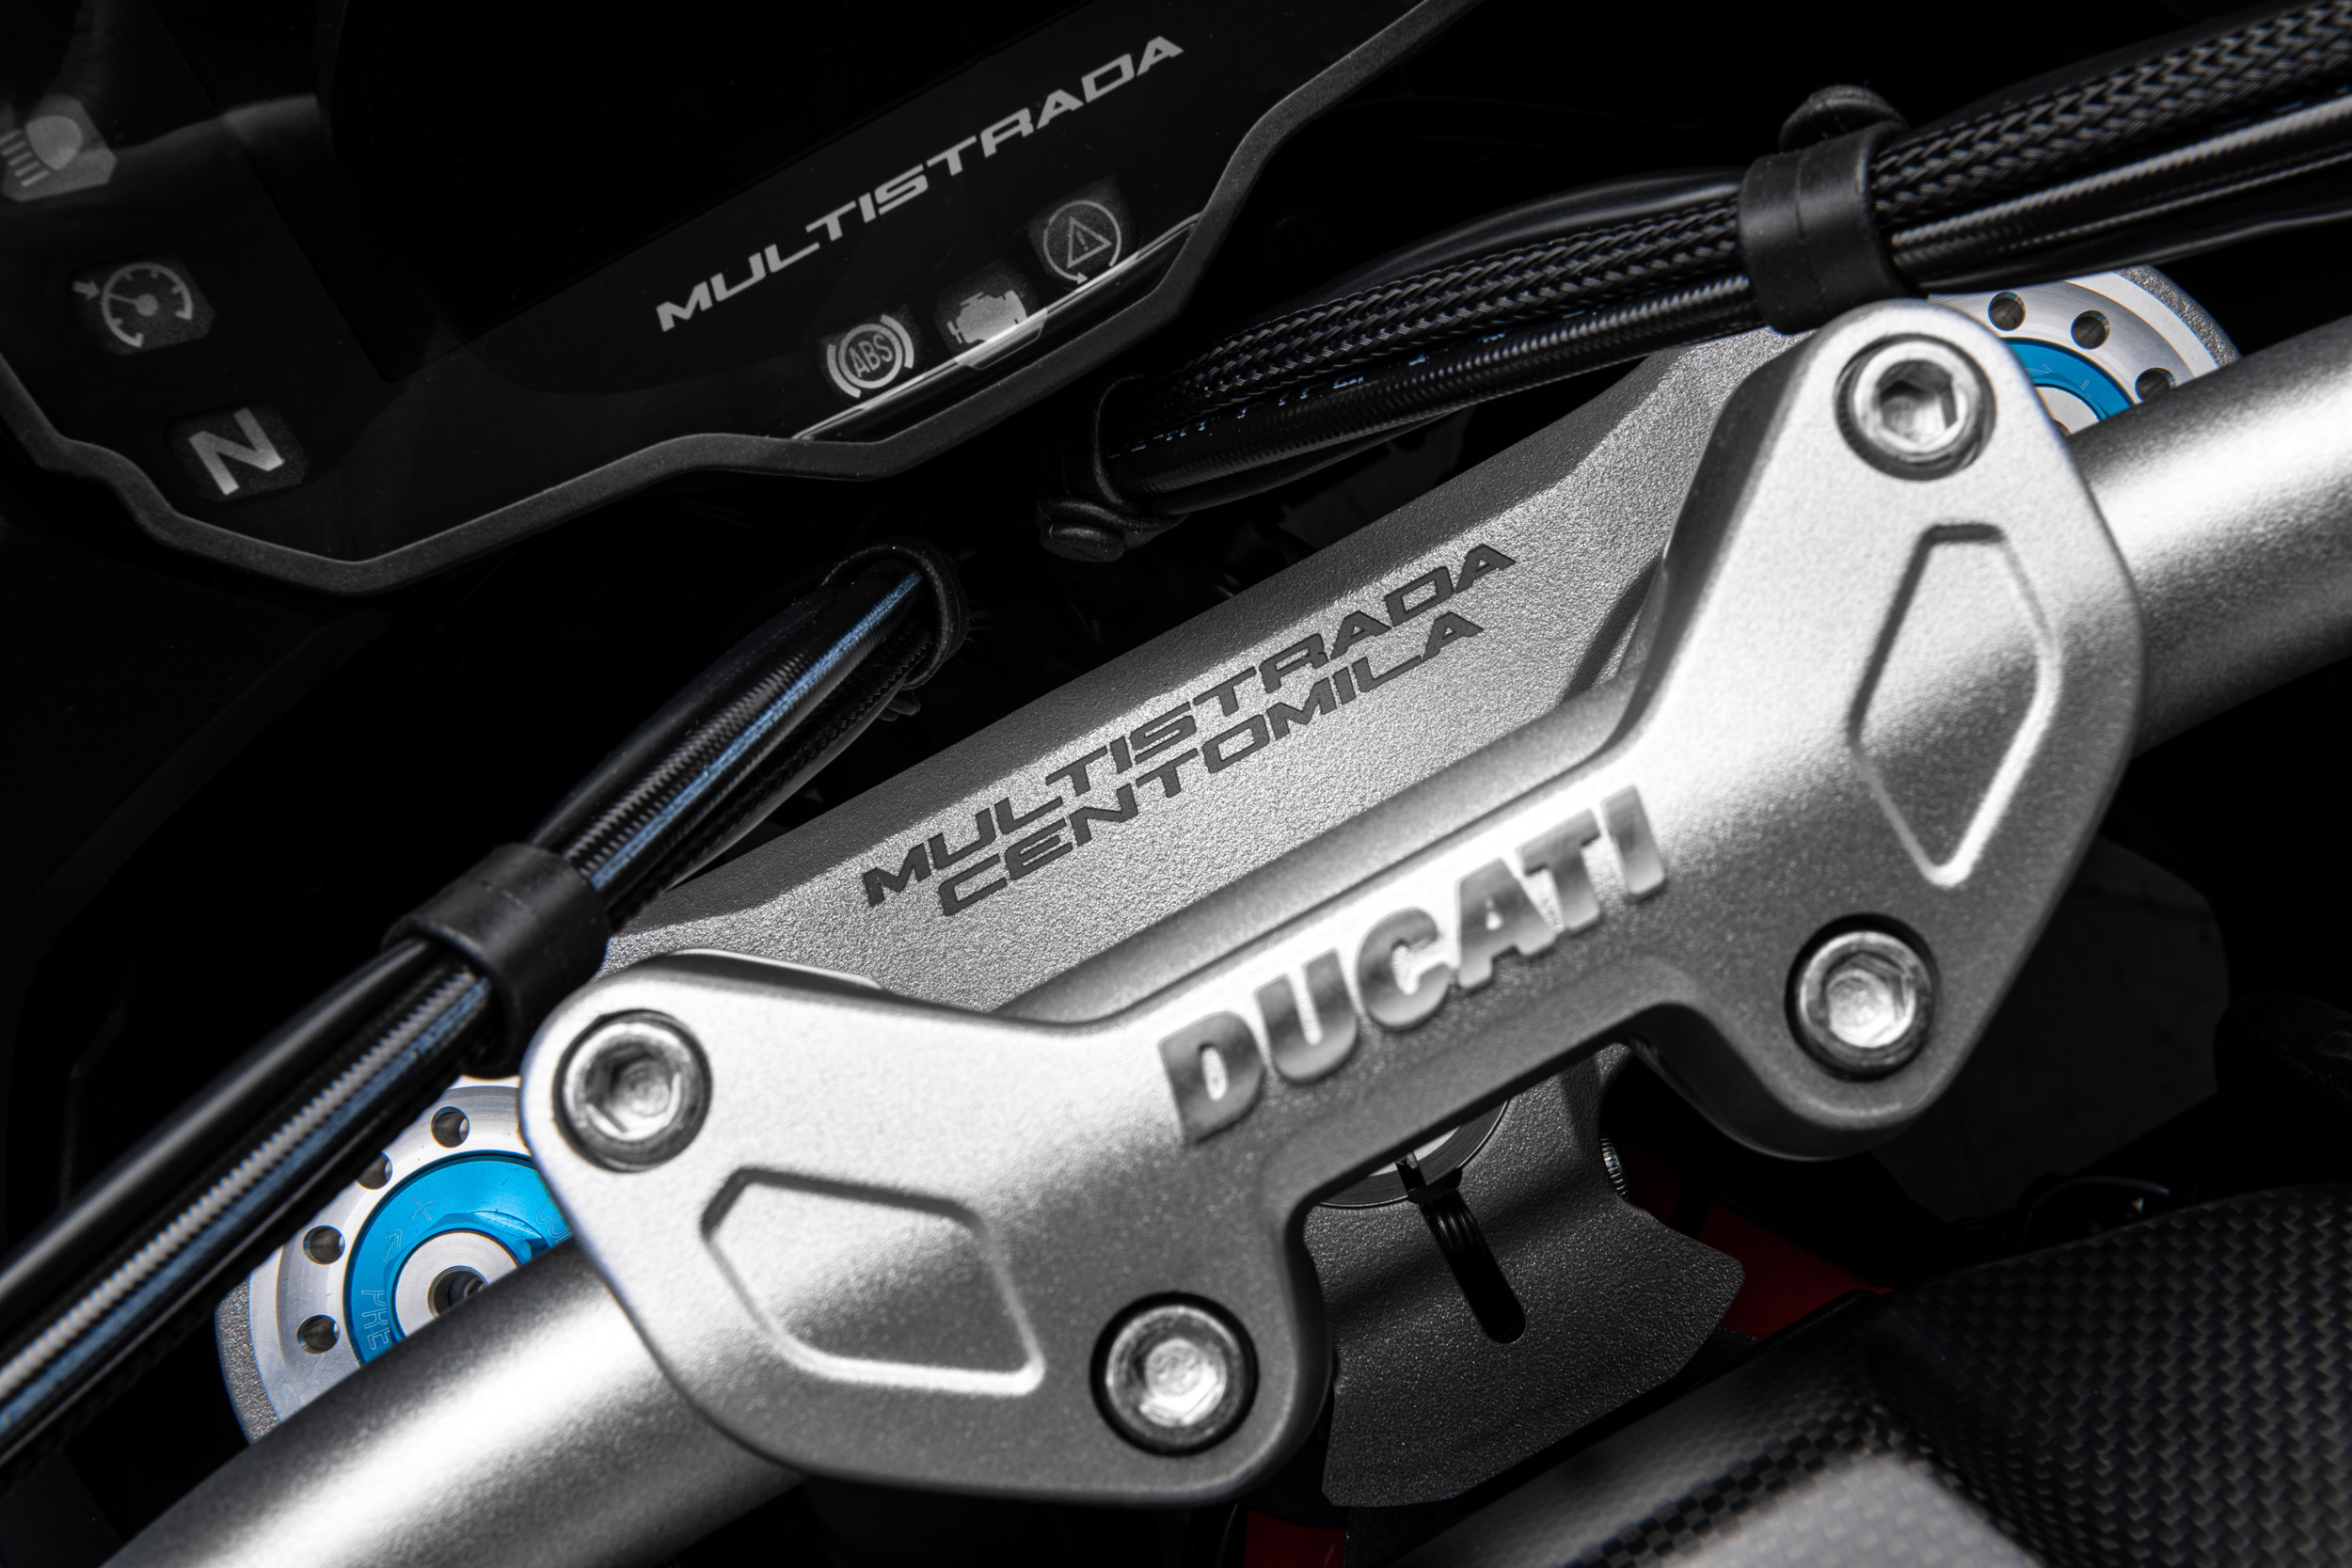 190917 Ducati Multistrada number 100,000